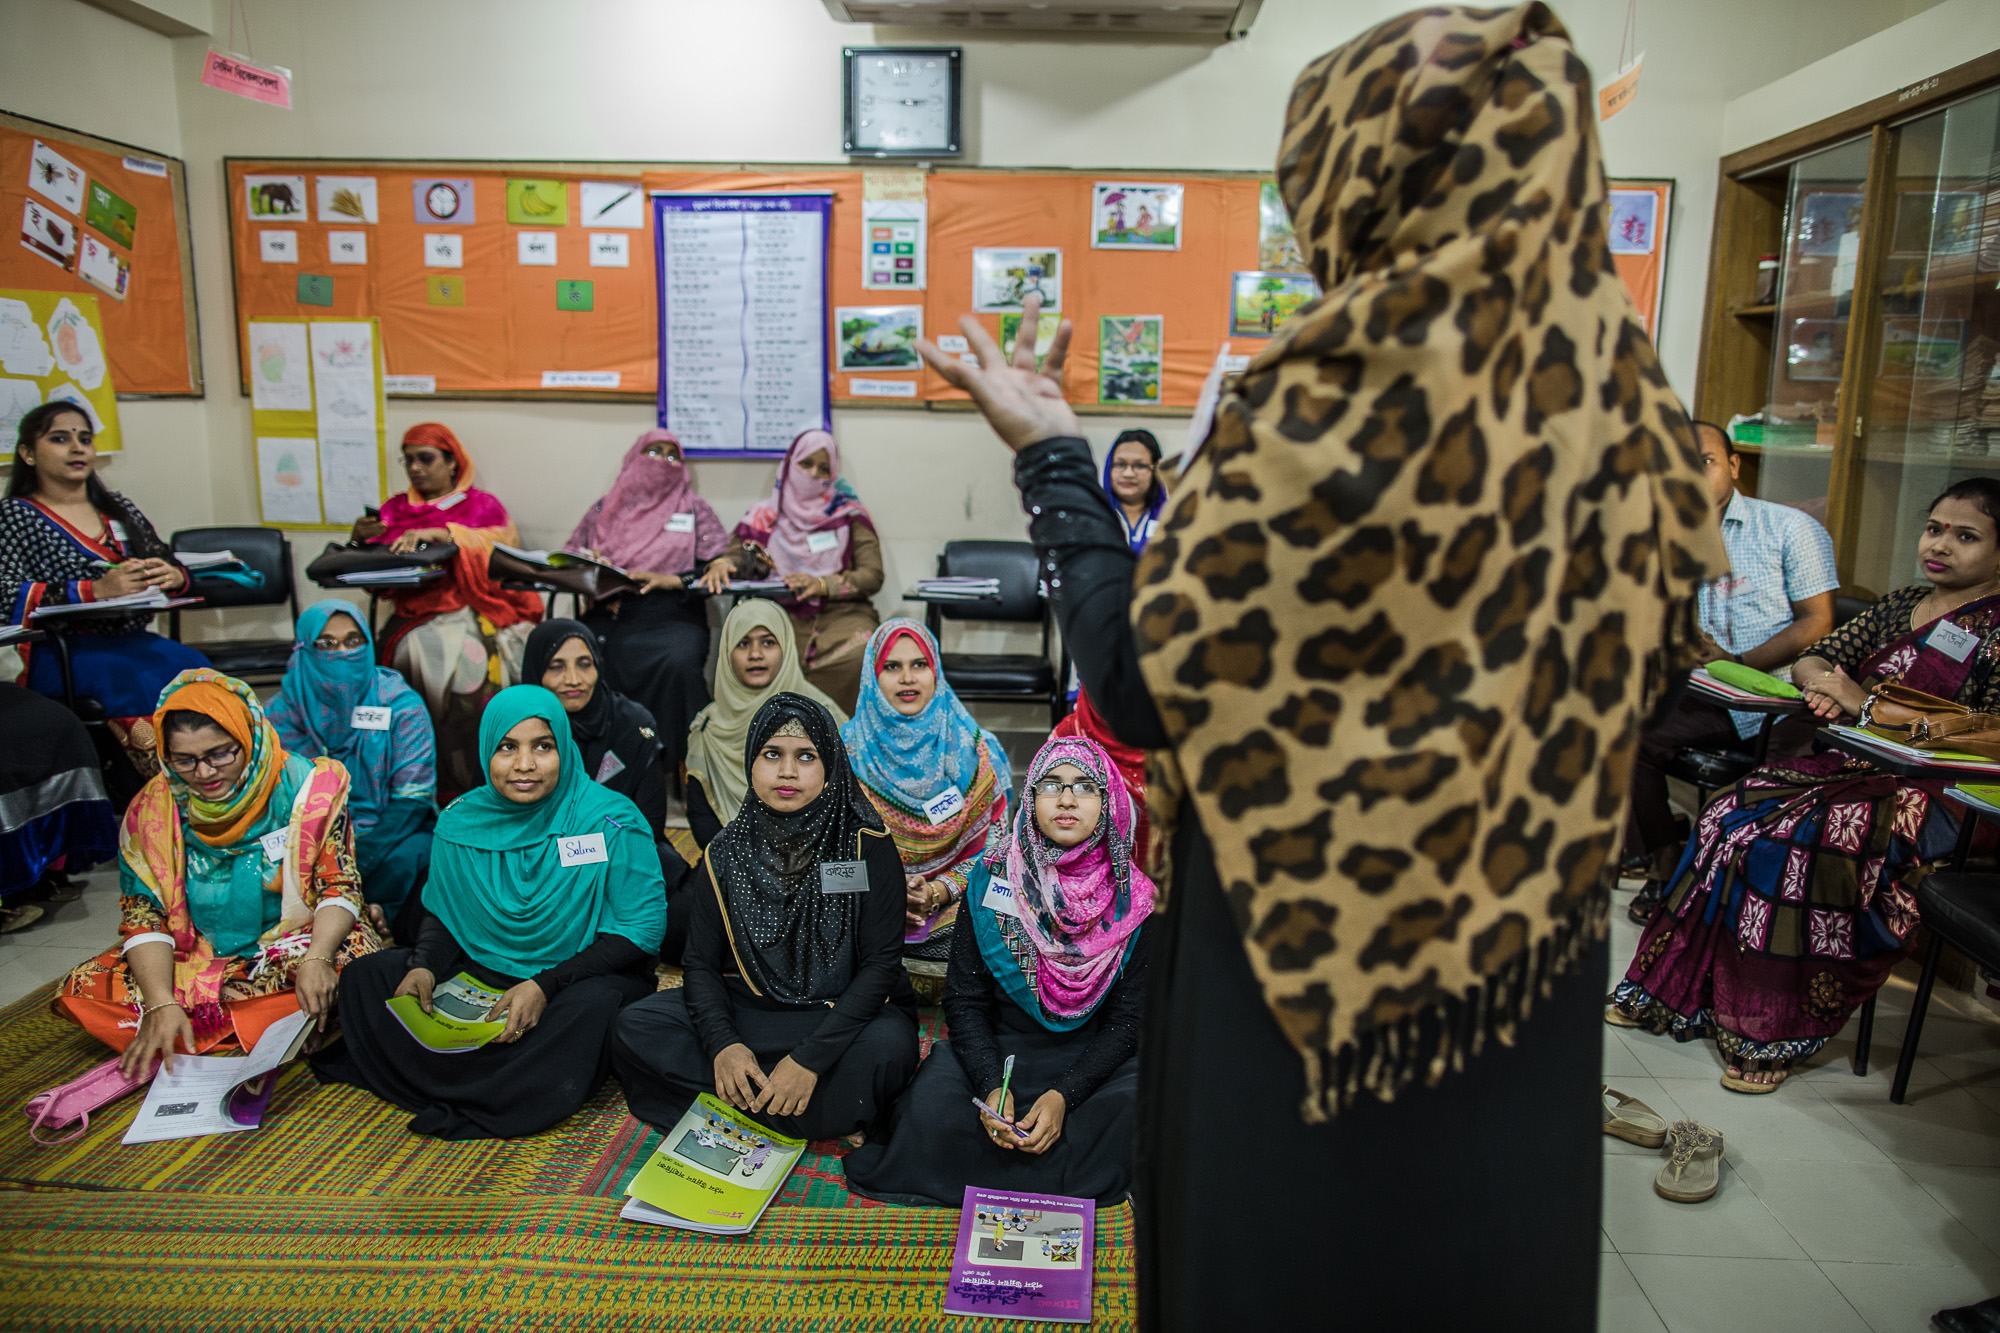 COX'S BAZAR, BANGLADESH: October 26, 2016 - Teacher training by the USAID funded READ project helps teachers measure reading skill in the early grades. It also provides strategies for teachers to help struggling students. Photo by Morgana Wingard